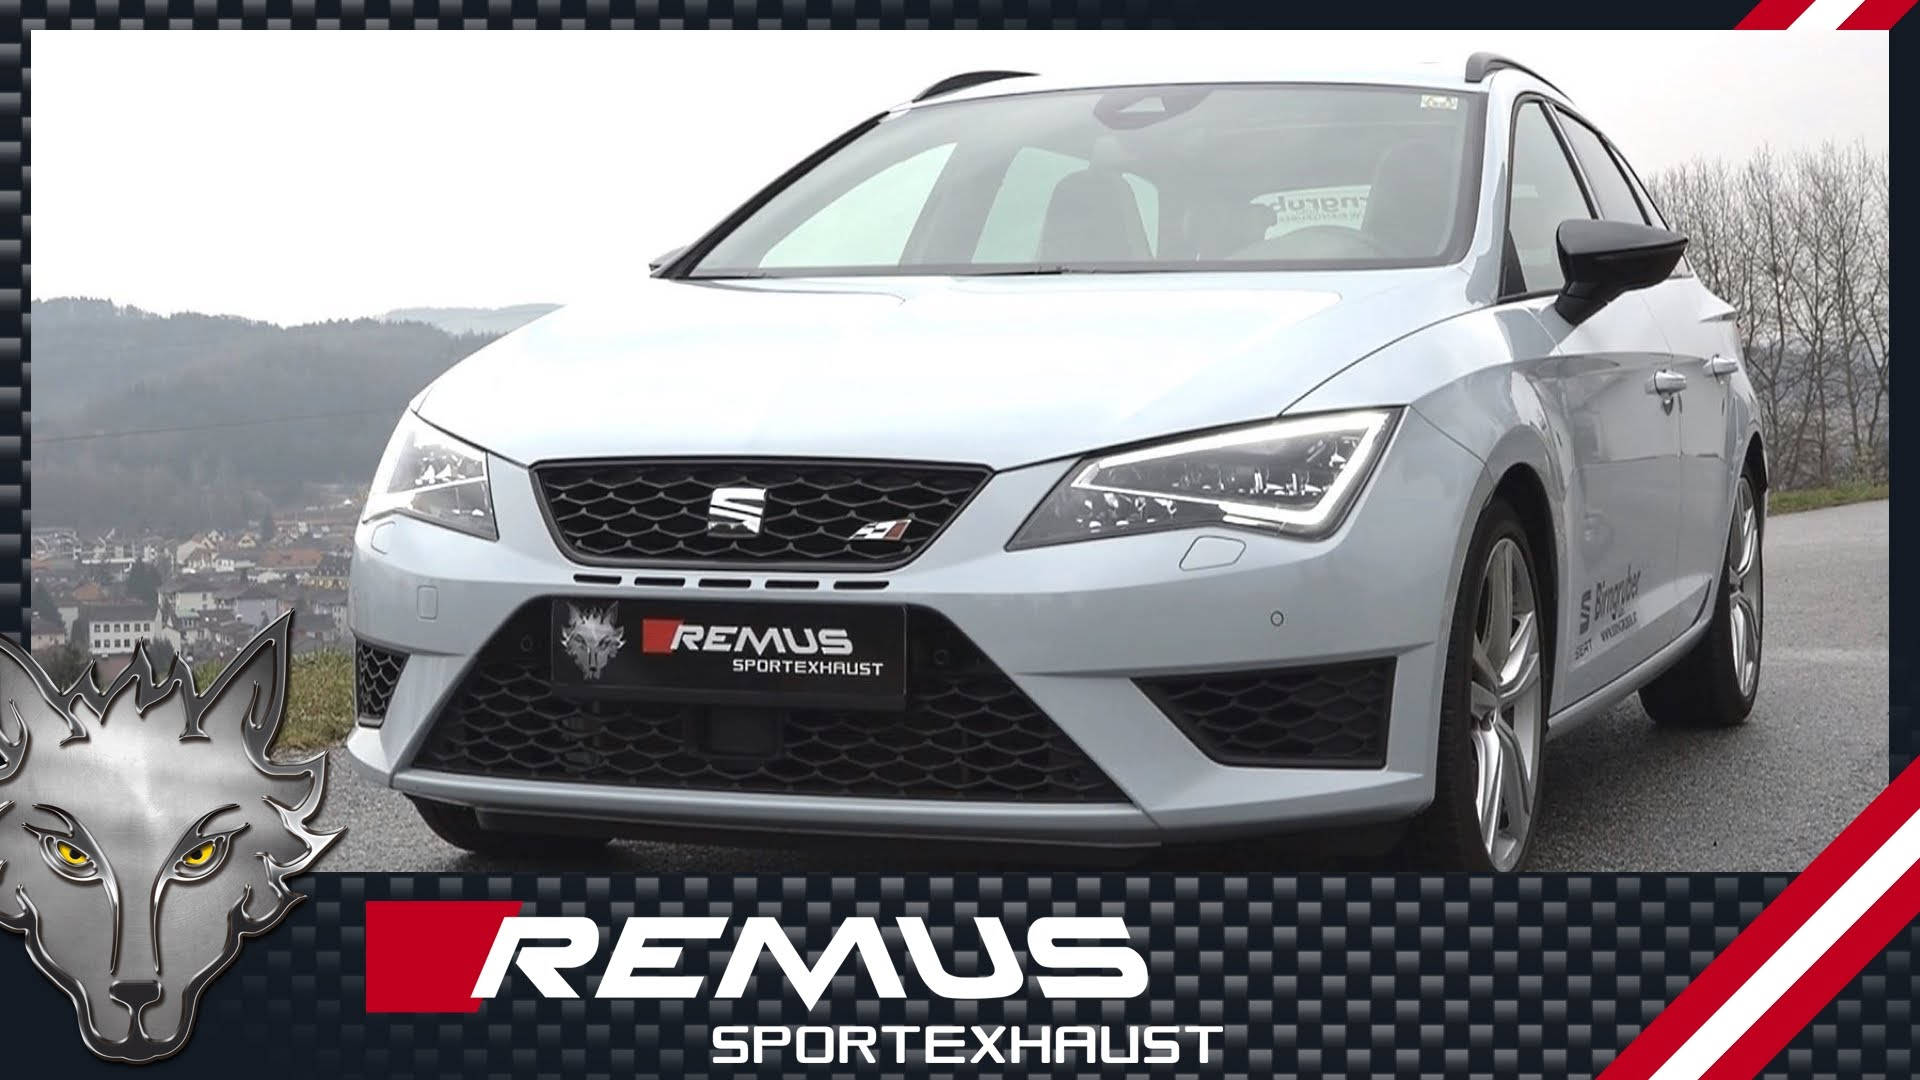 seat leon st cupra gets remus cat back exhaust system. Black Bedroom Furniture Sets. Home Design Ideas